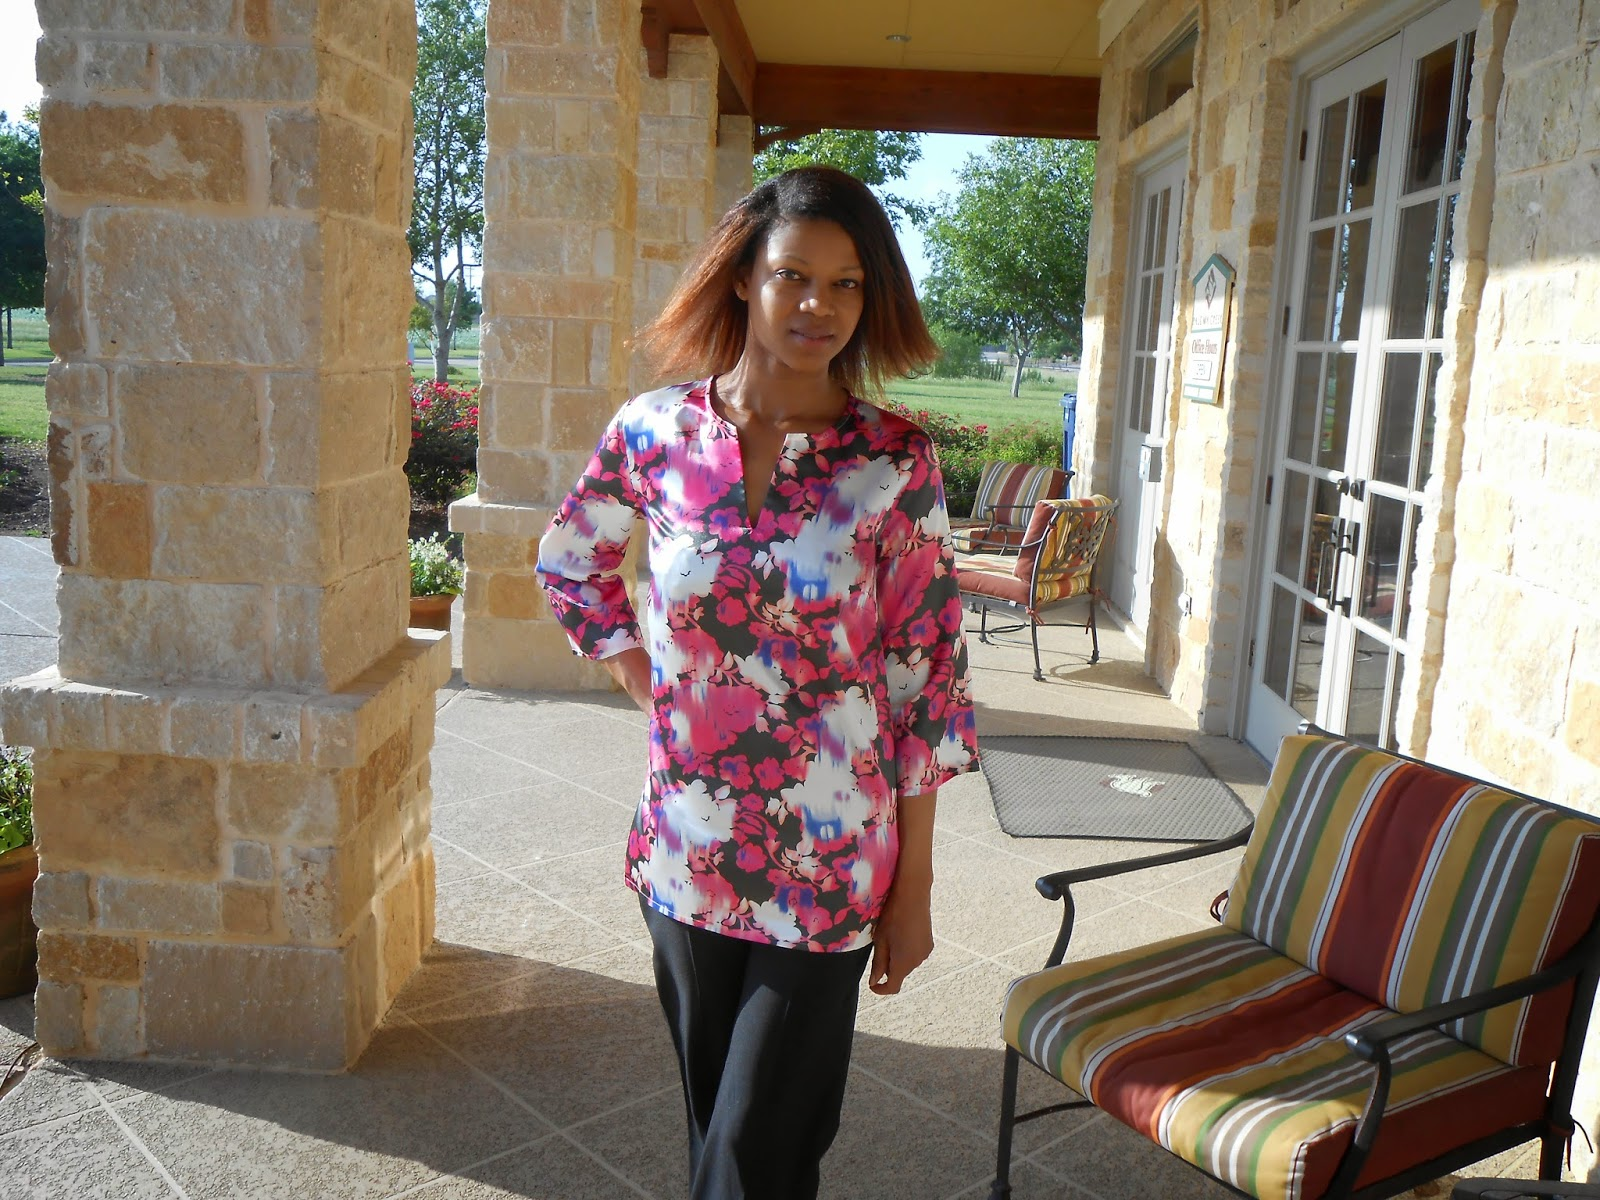 The sewing cpa simplicity sew simple a1489 tunic top right now my sewing formula is simple pattern beautiful fabric gorgeous garment simple easy patterns help me to better be able to fit sewing into my jeuxipadfo Images